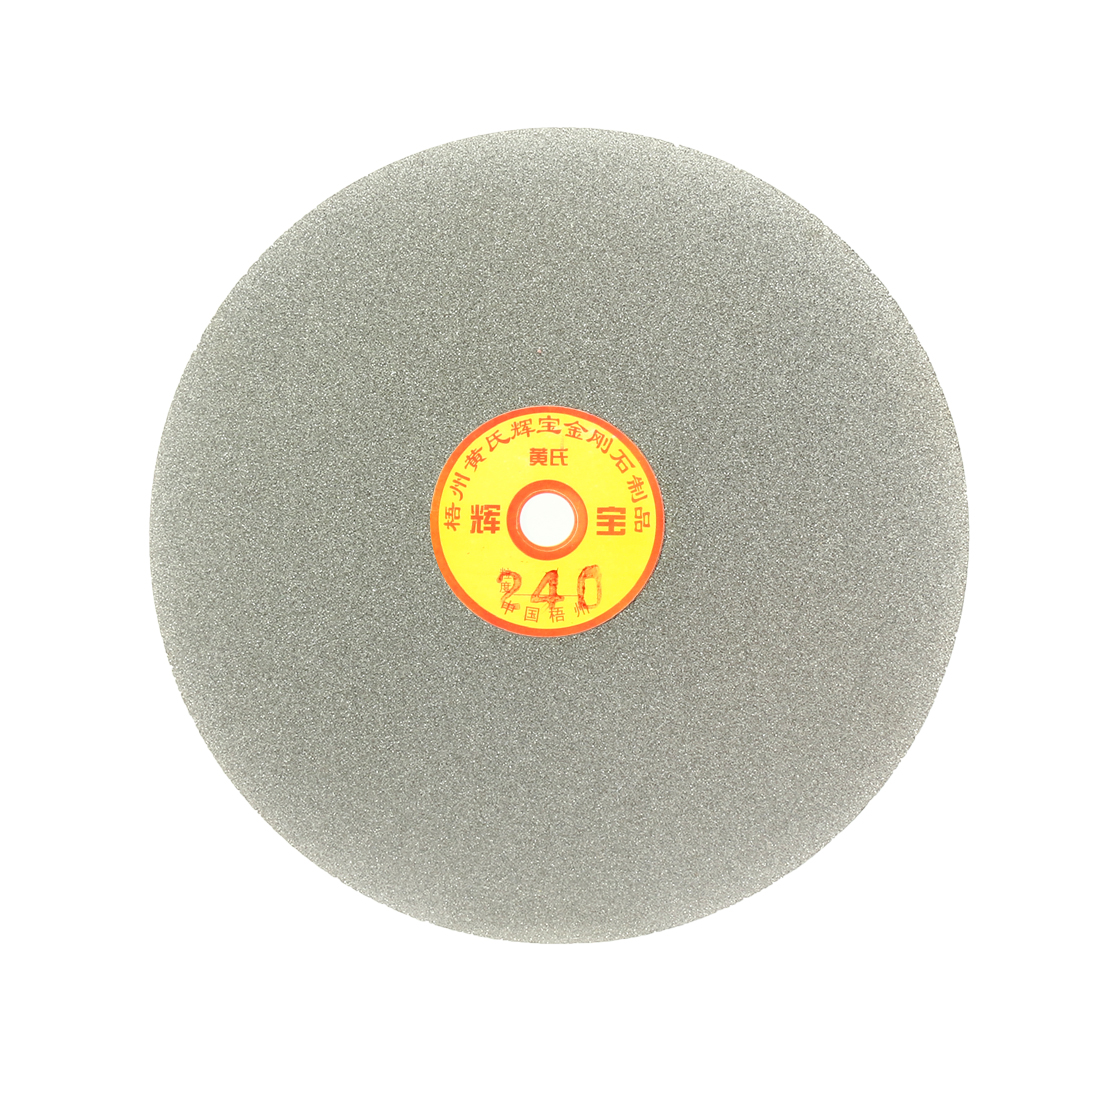 180mm 7-inch Grit 240 Diamond Coated Flat Lap Disk Wheel Grinding Sanding Disc